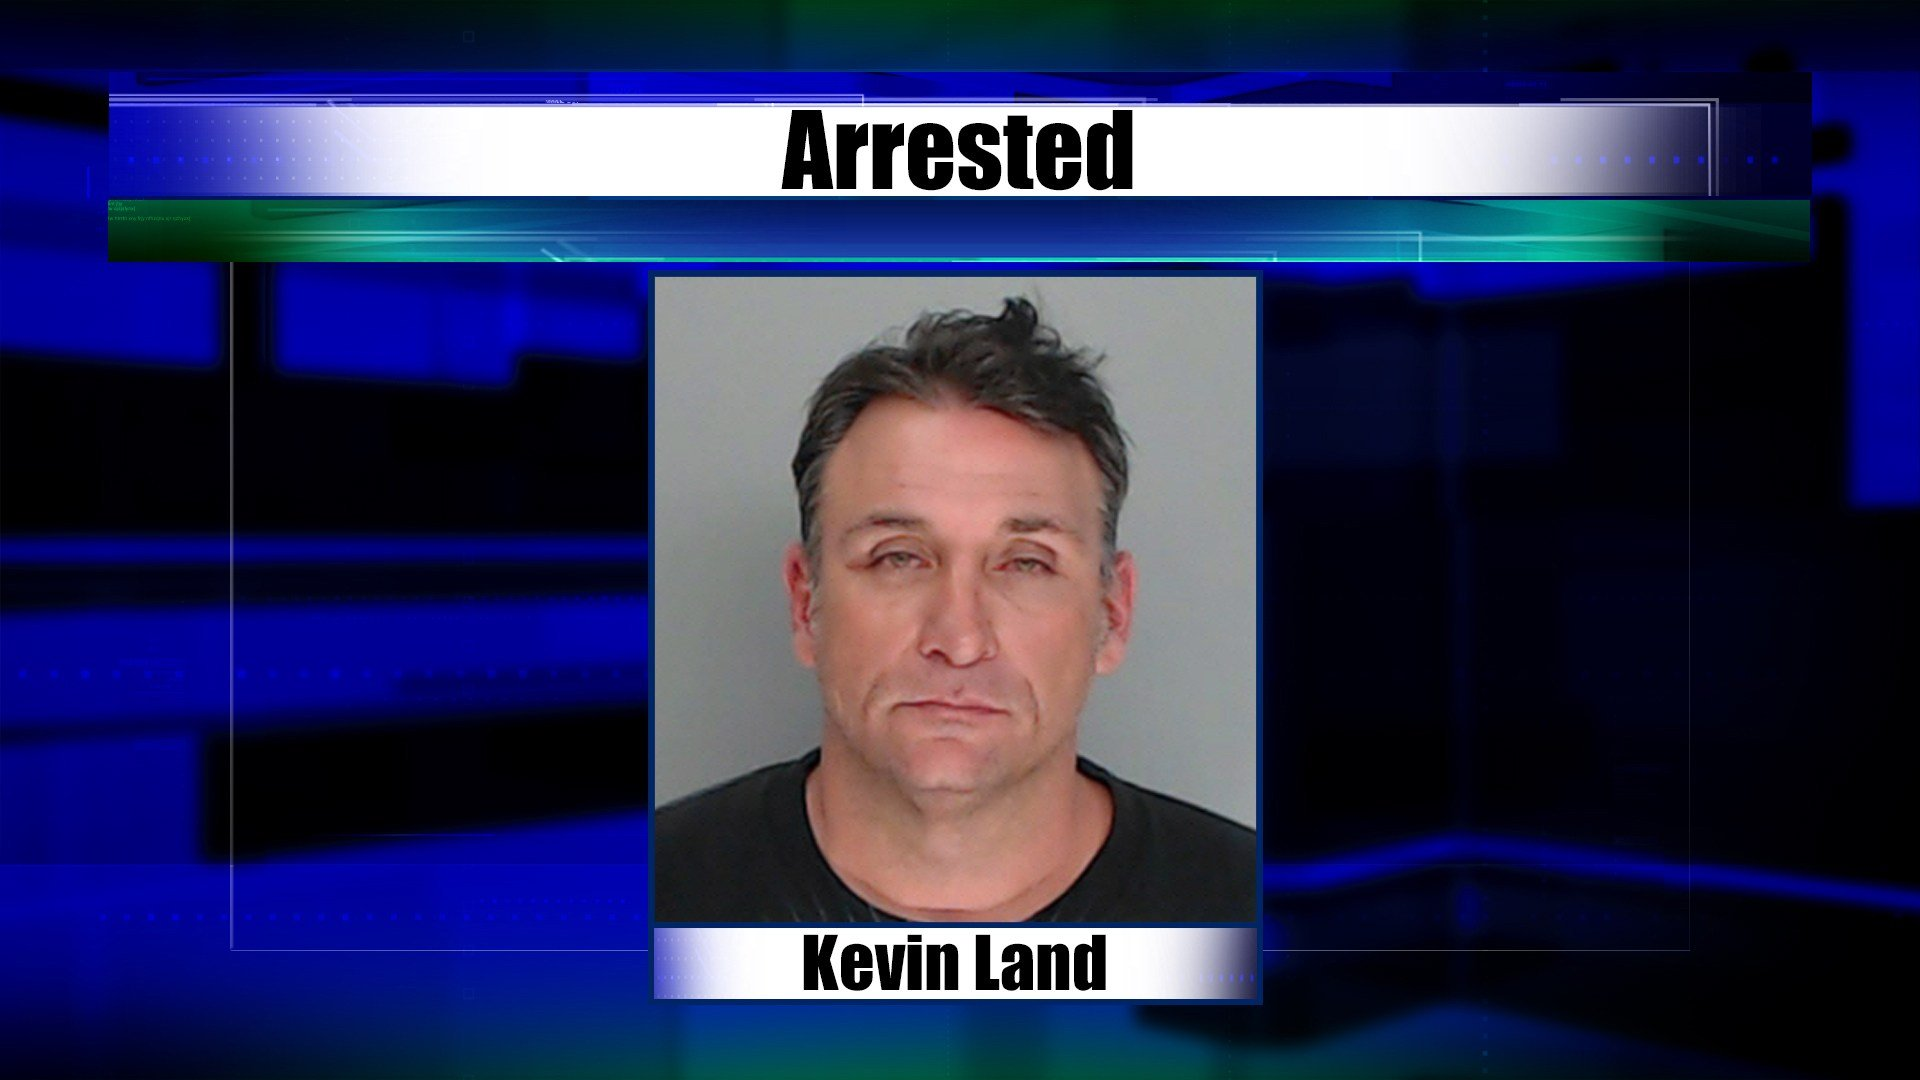 Kevin Land was arrested for reckless driving, possession of marijuana and drug paraphernalia, and escaping custody